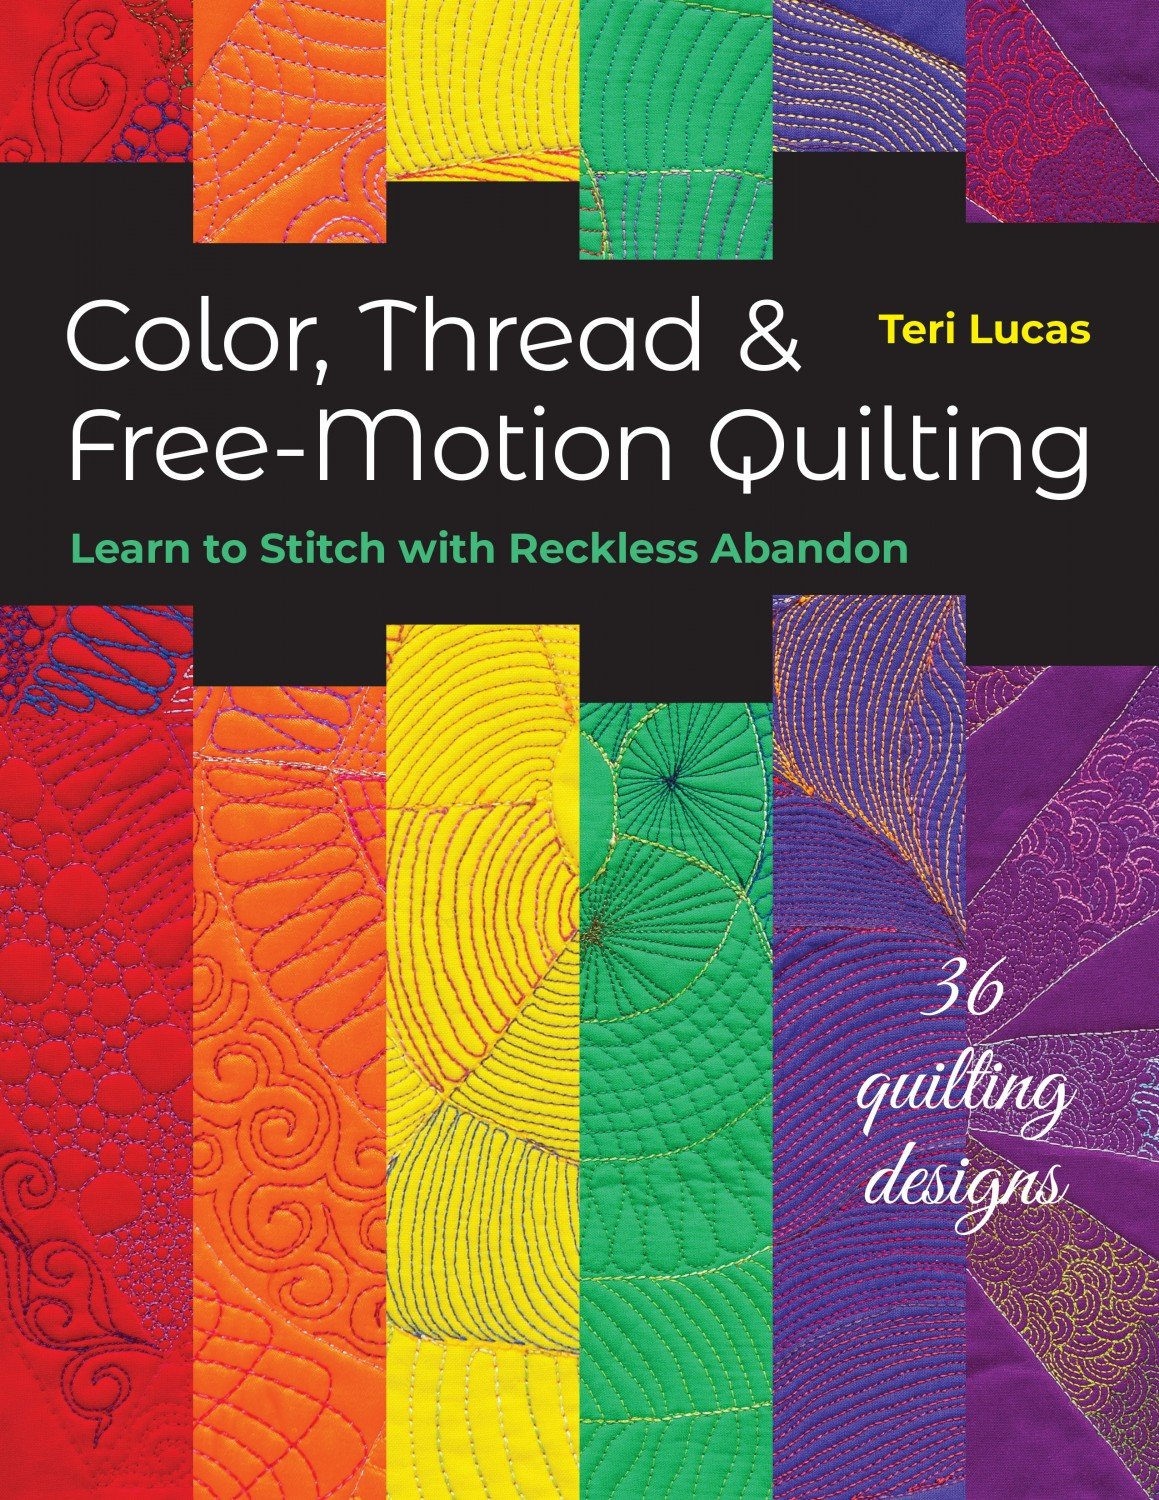 Color Thread & Free-Motion Quilting